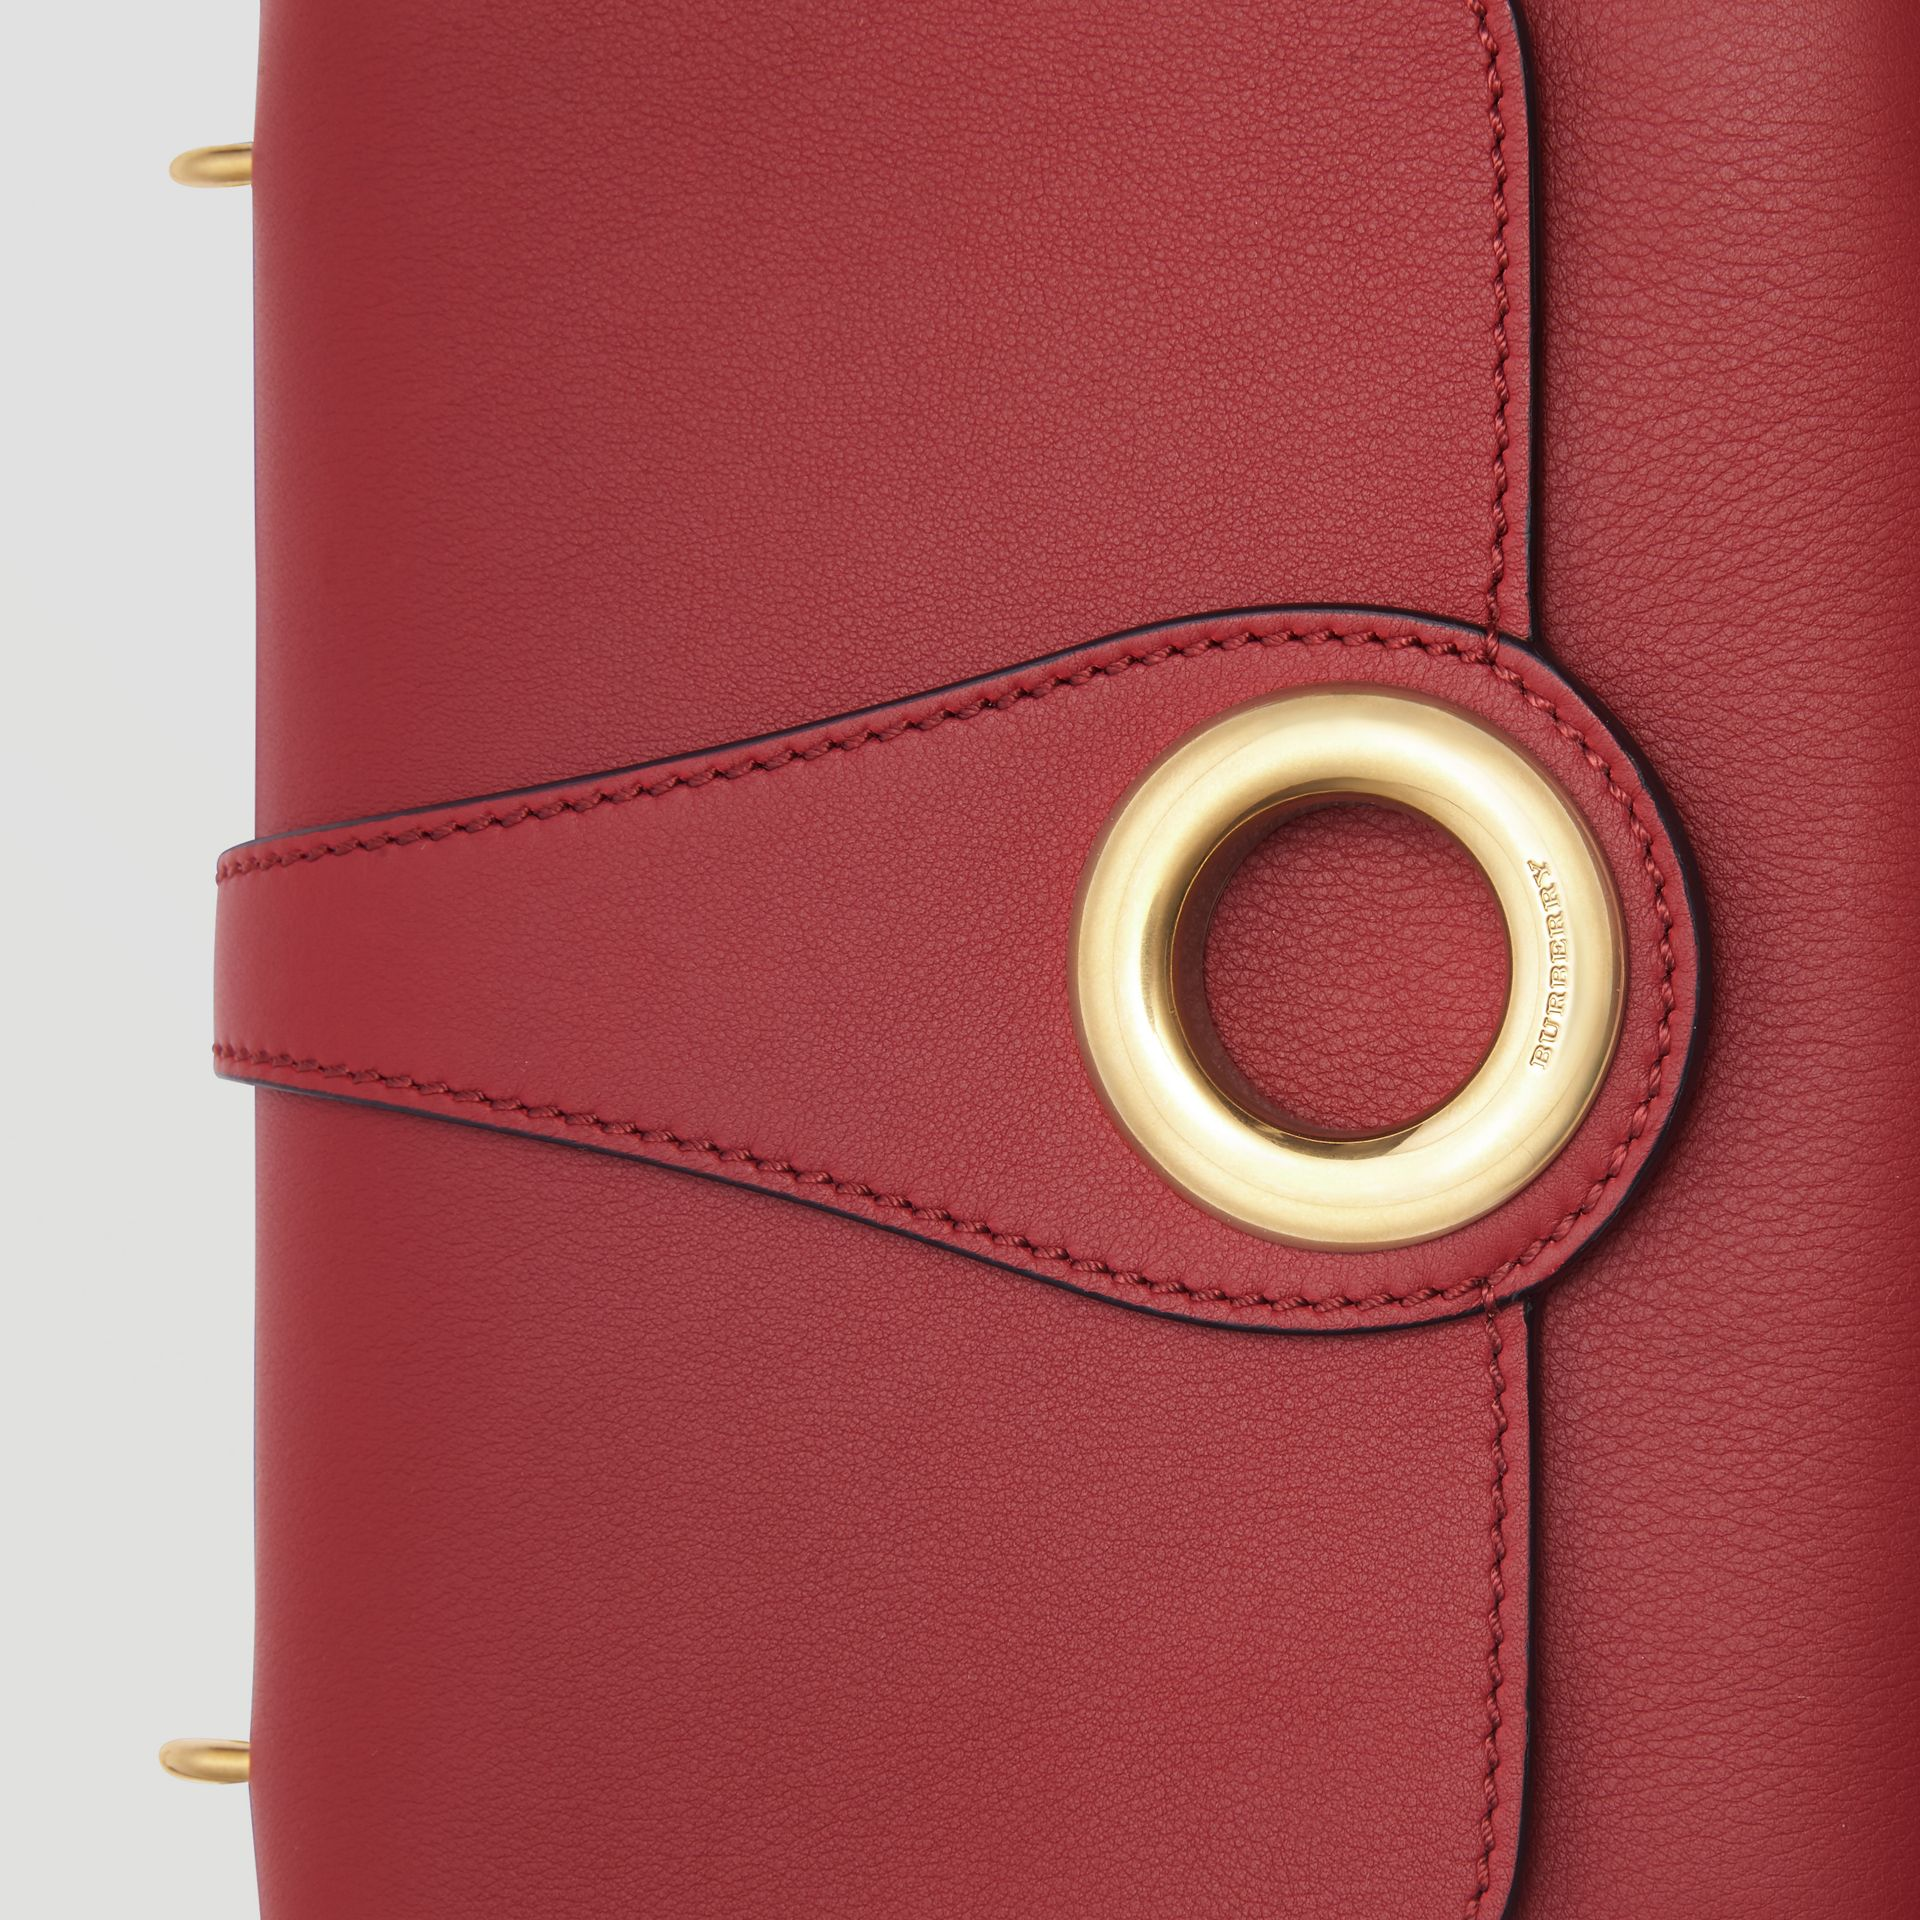 The Leather Grommet Detail Crossbody Bag in Crimson - Women | Burberry Canada - gallery image 1